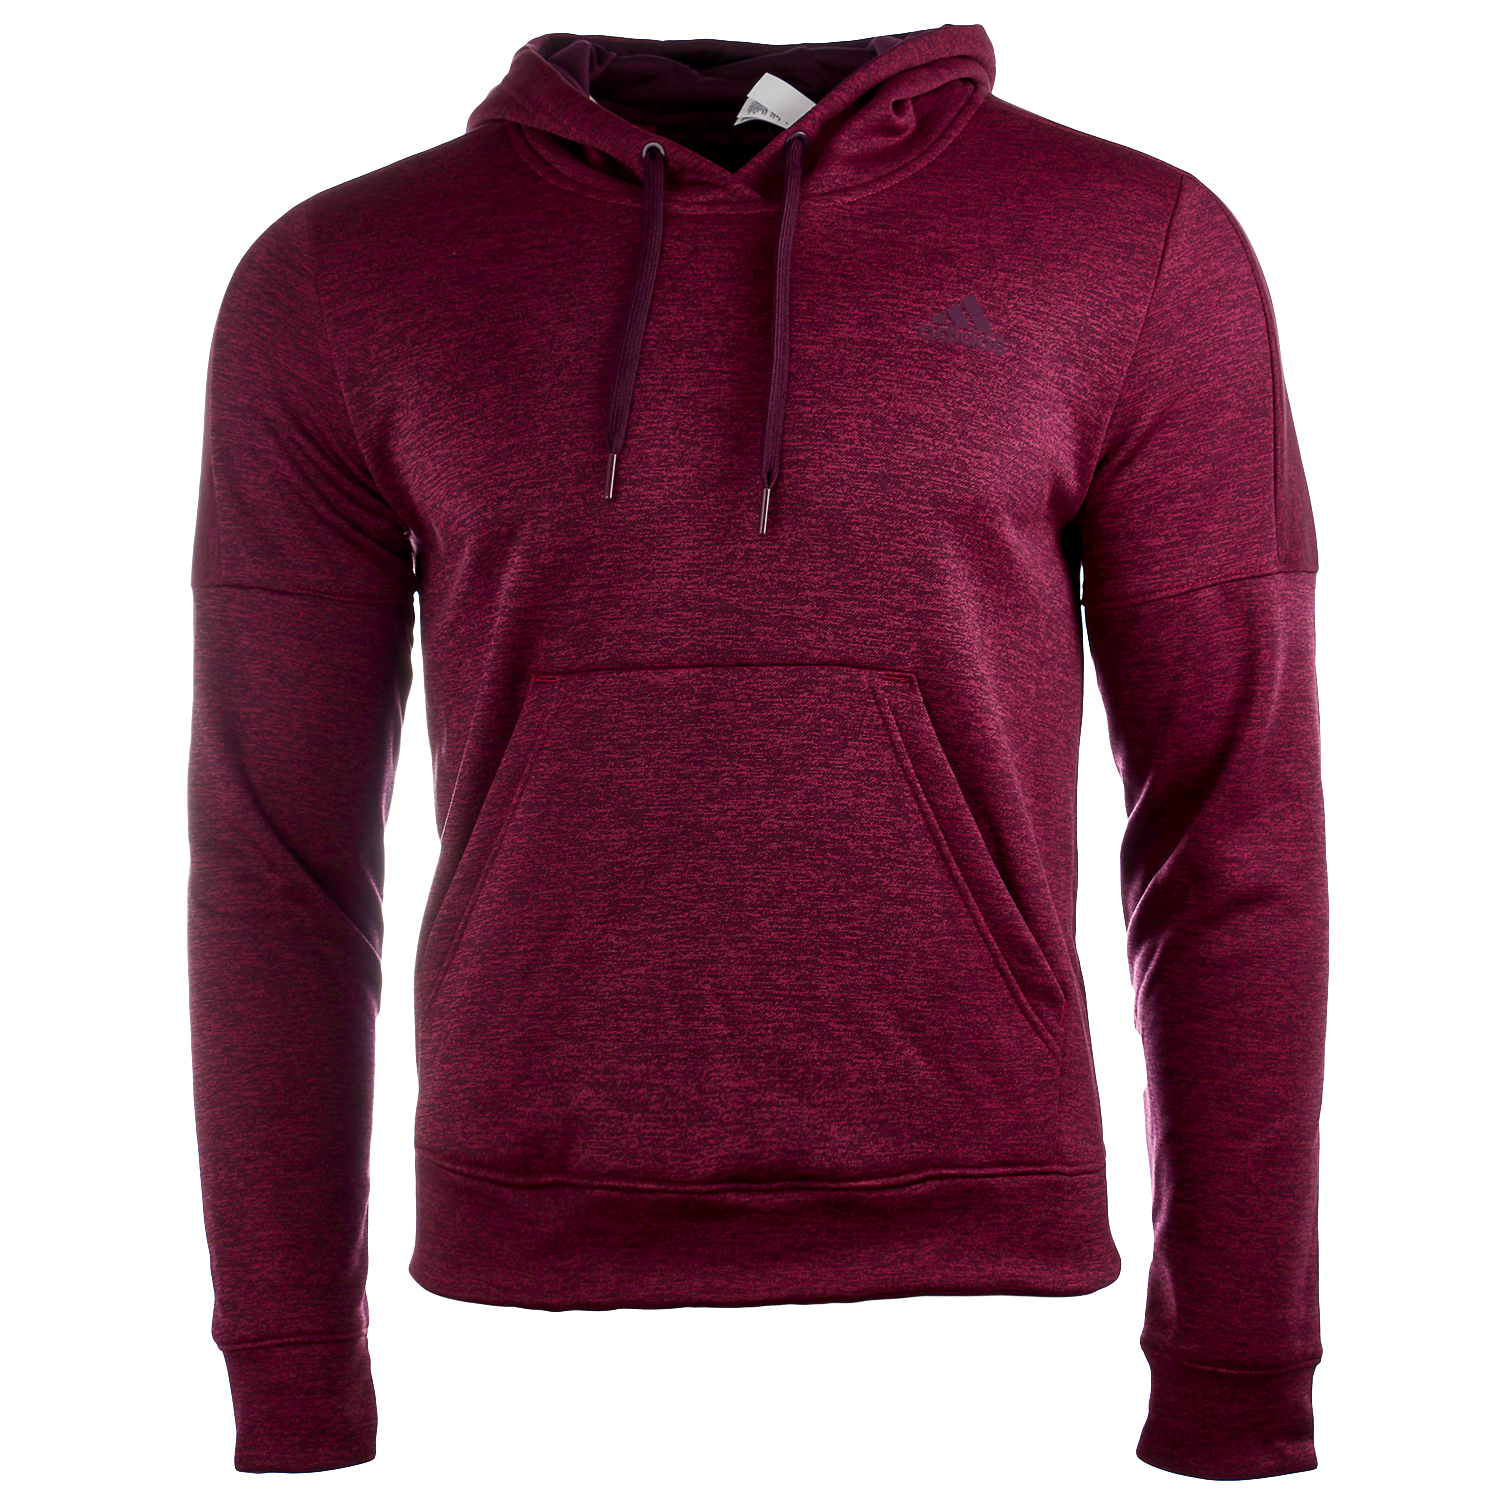 Adidas Team Issue Fleece  Pullover Hoodie - Mystery Ruby Melange/Mystery Ruby Melange/Red Night - Womens - L